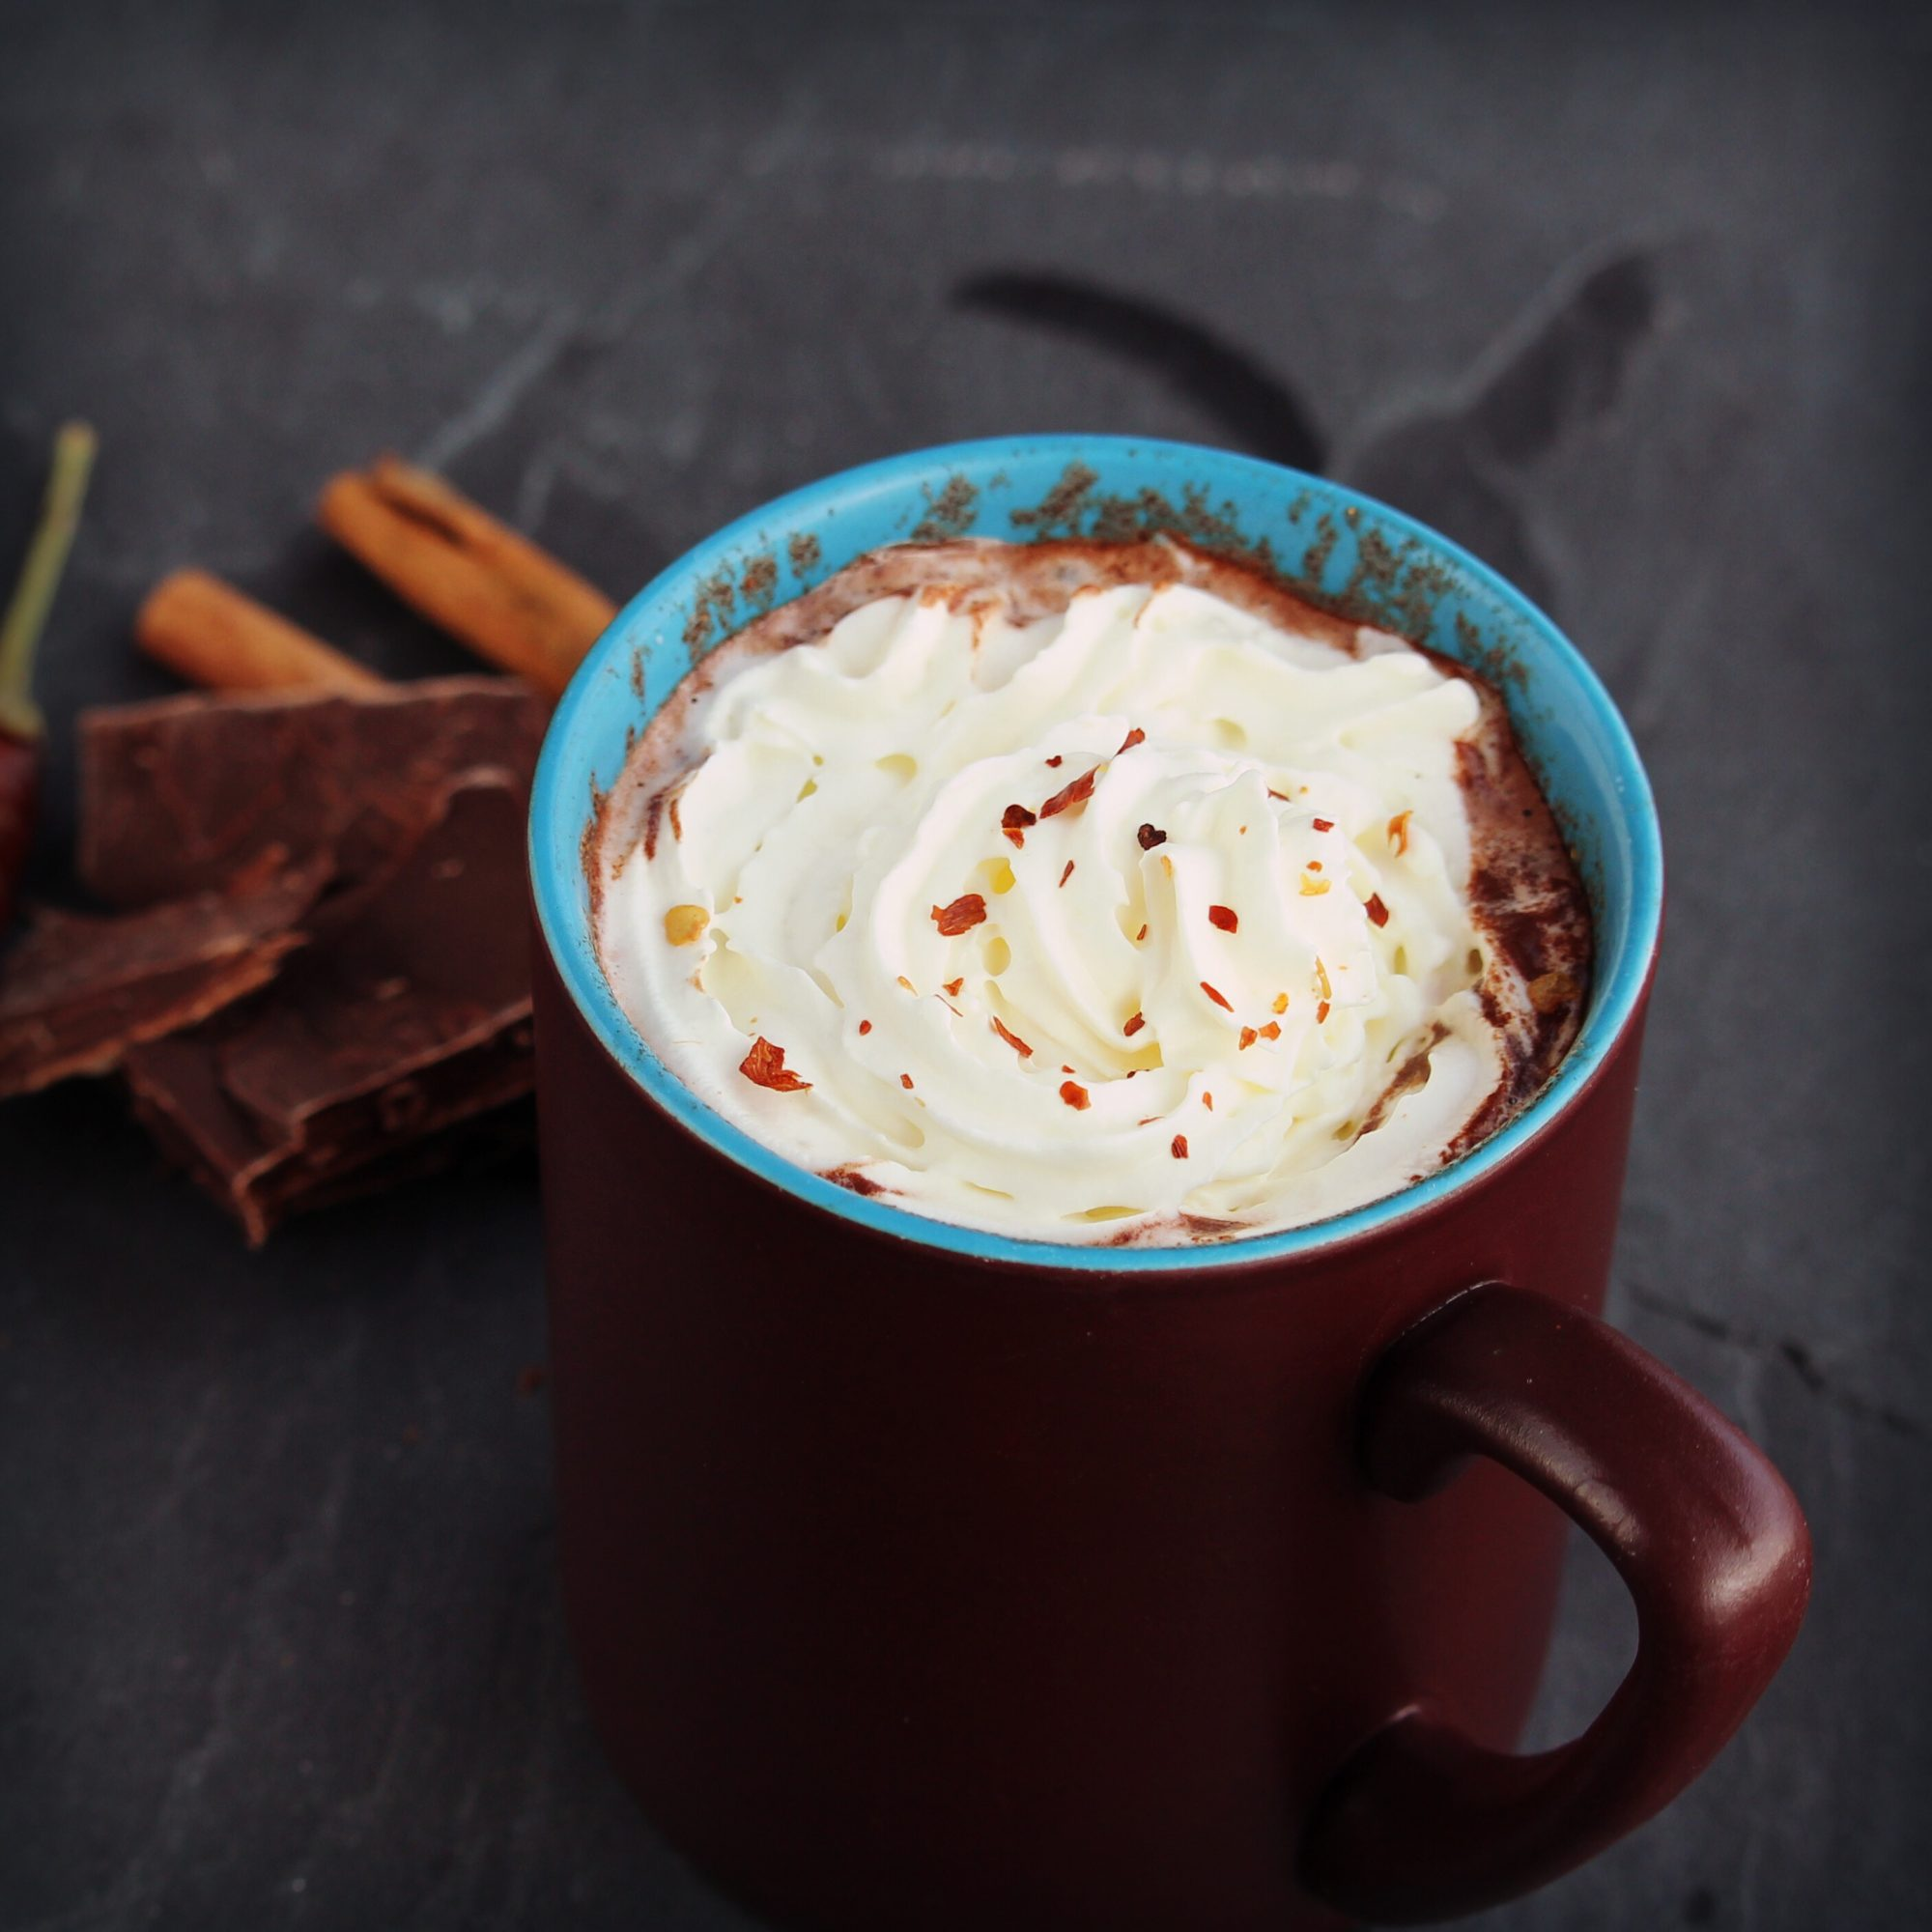 hot chocolate in a mug with whipped cream